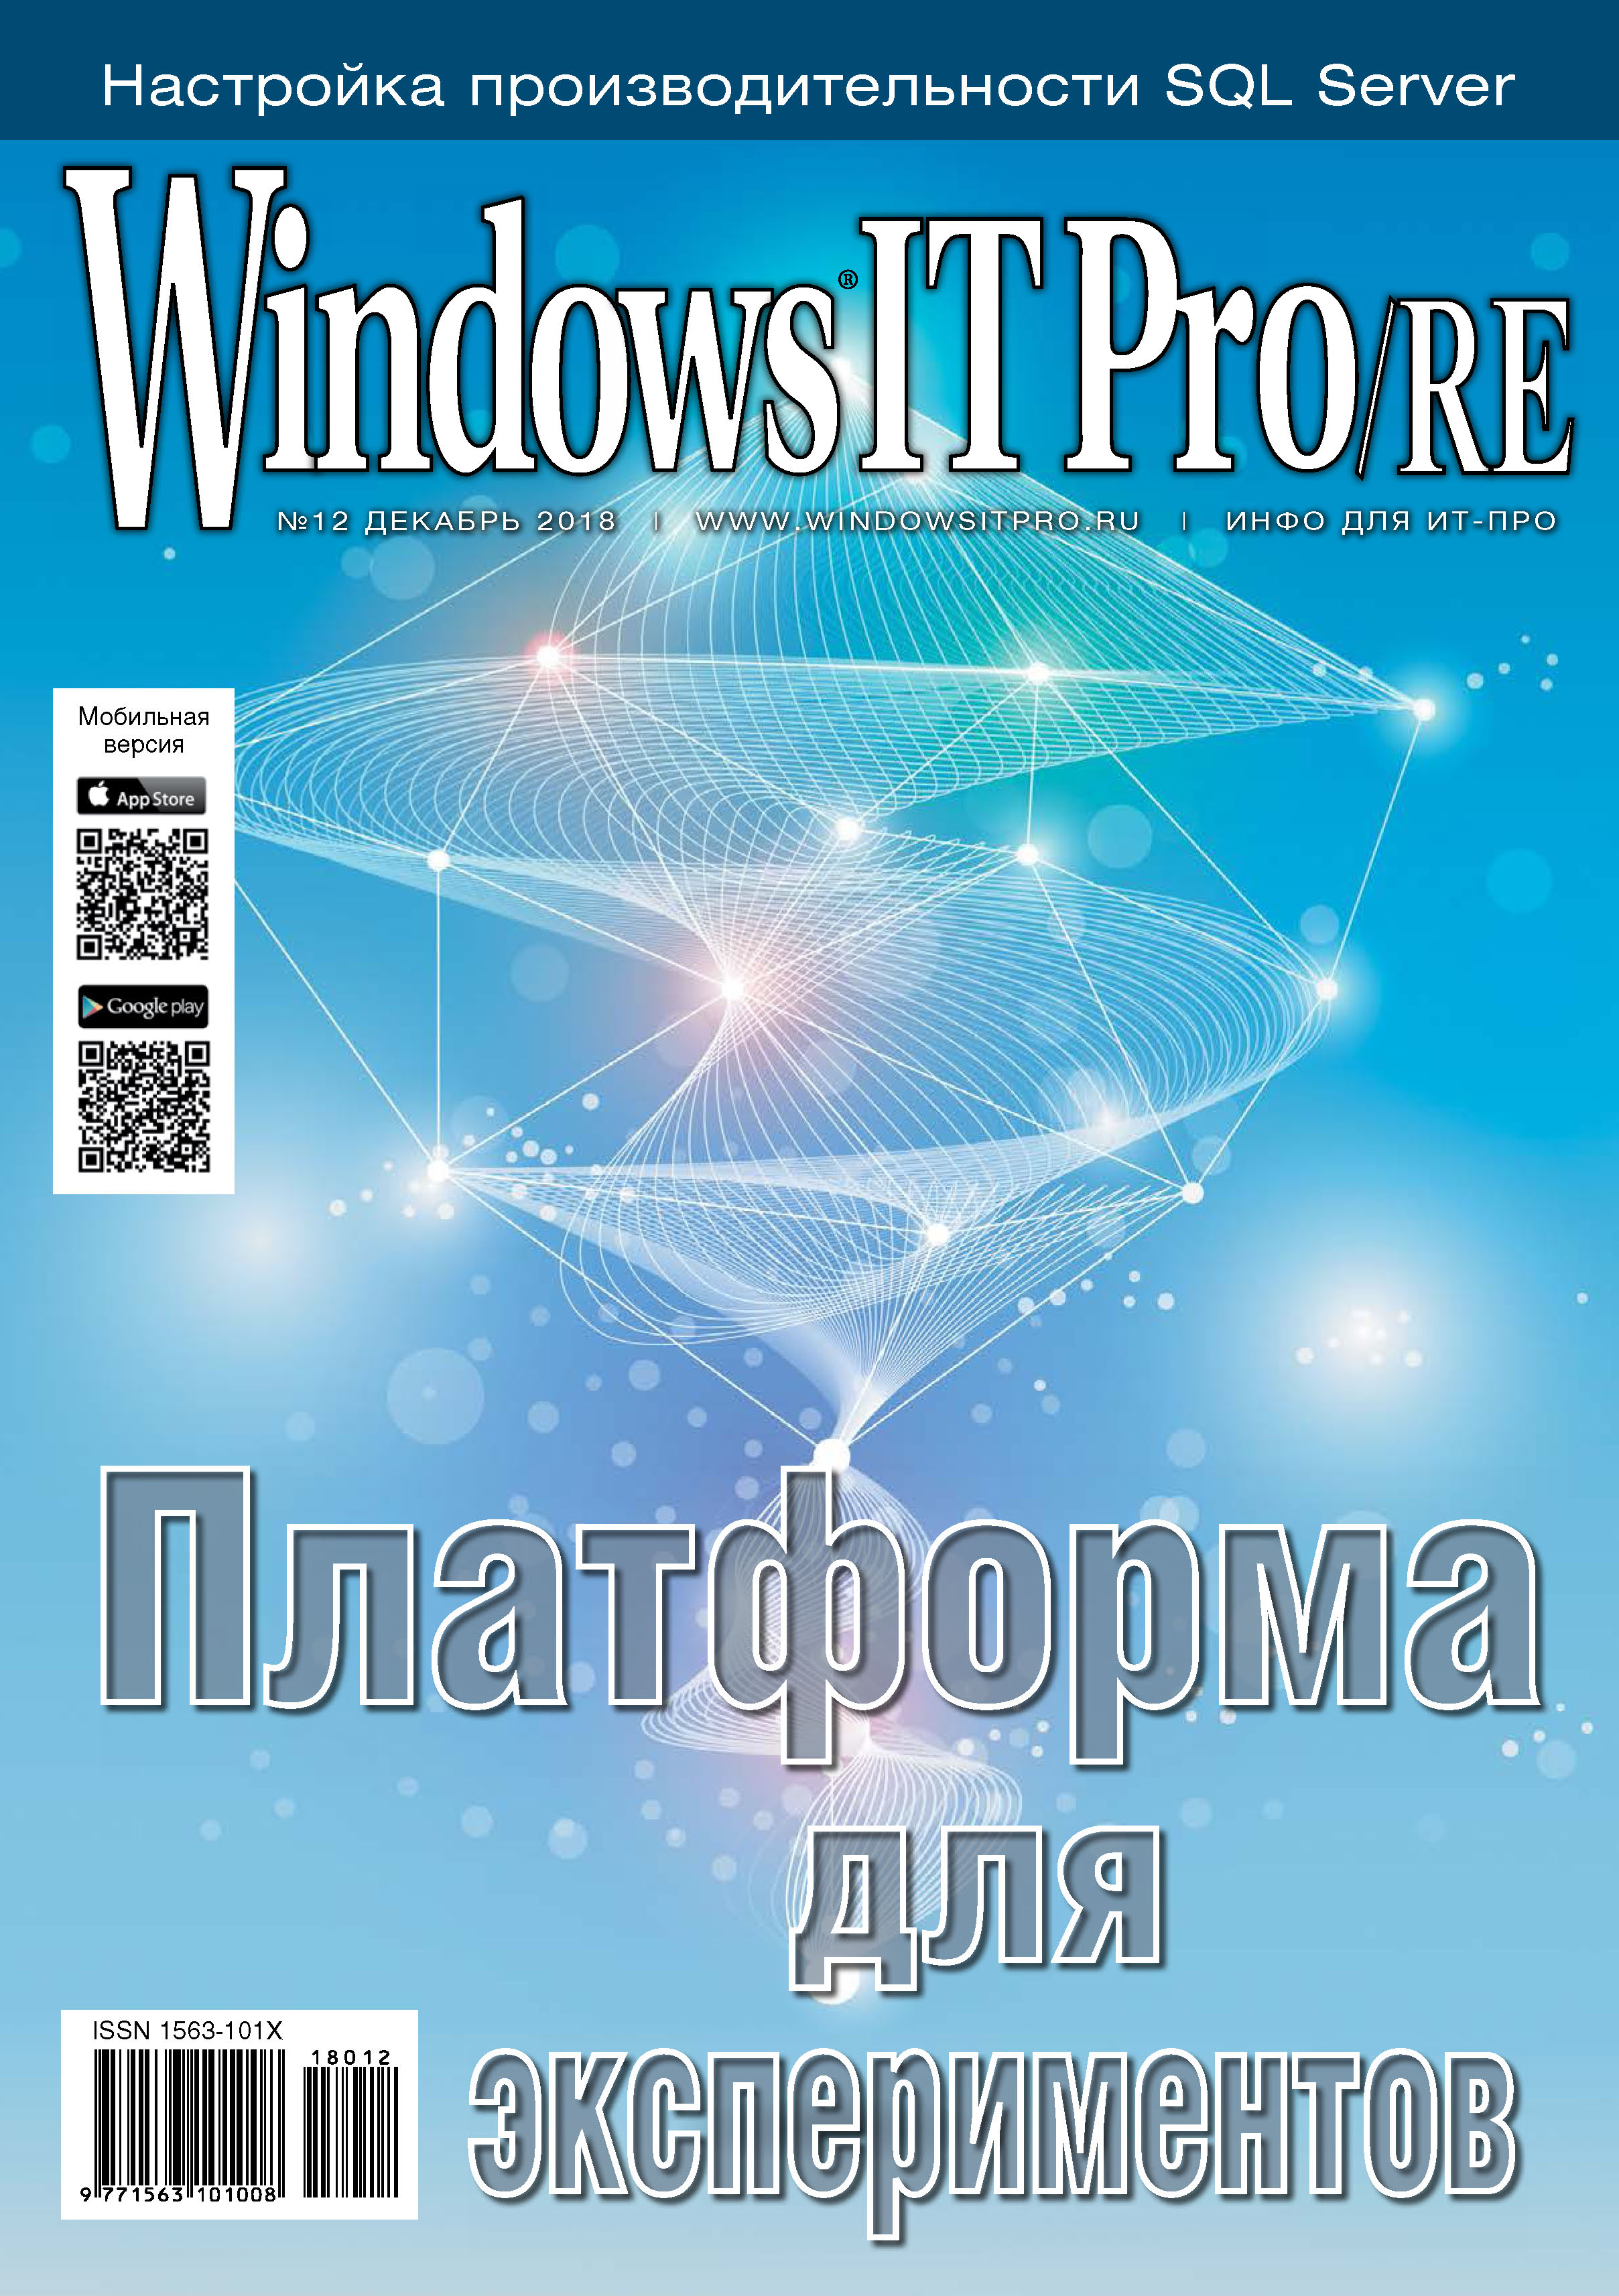 Windows IT Pro/RE №12/2018